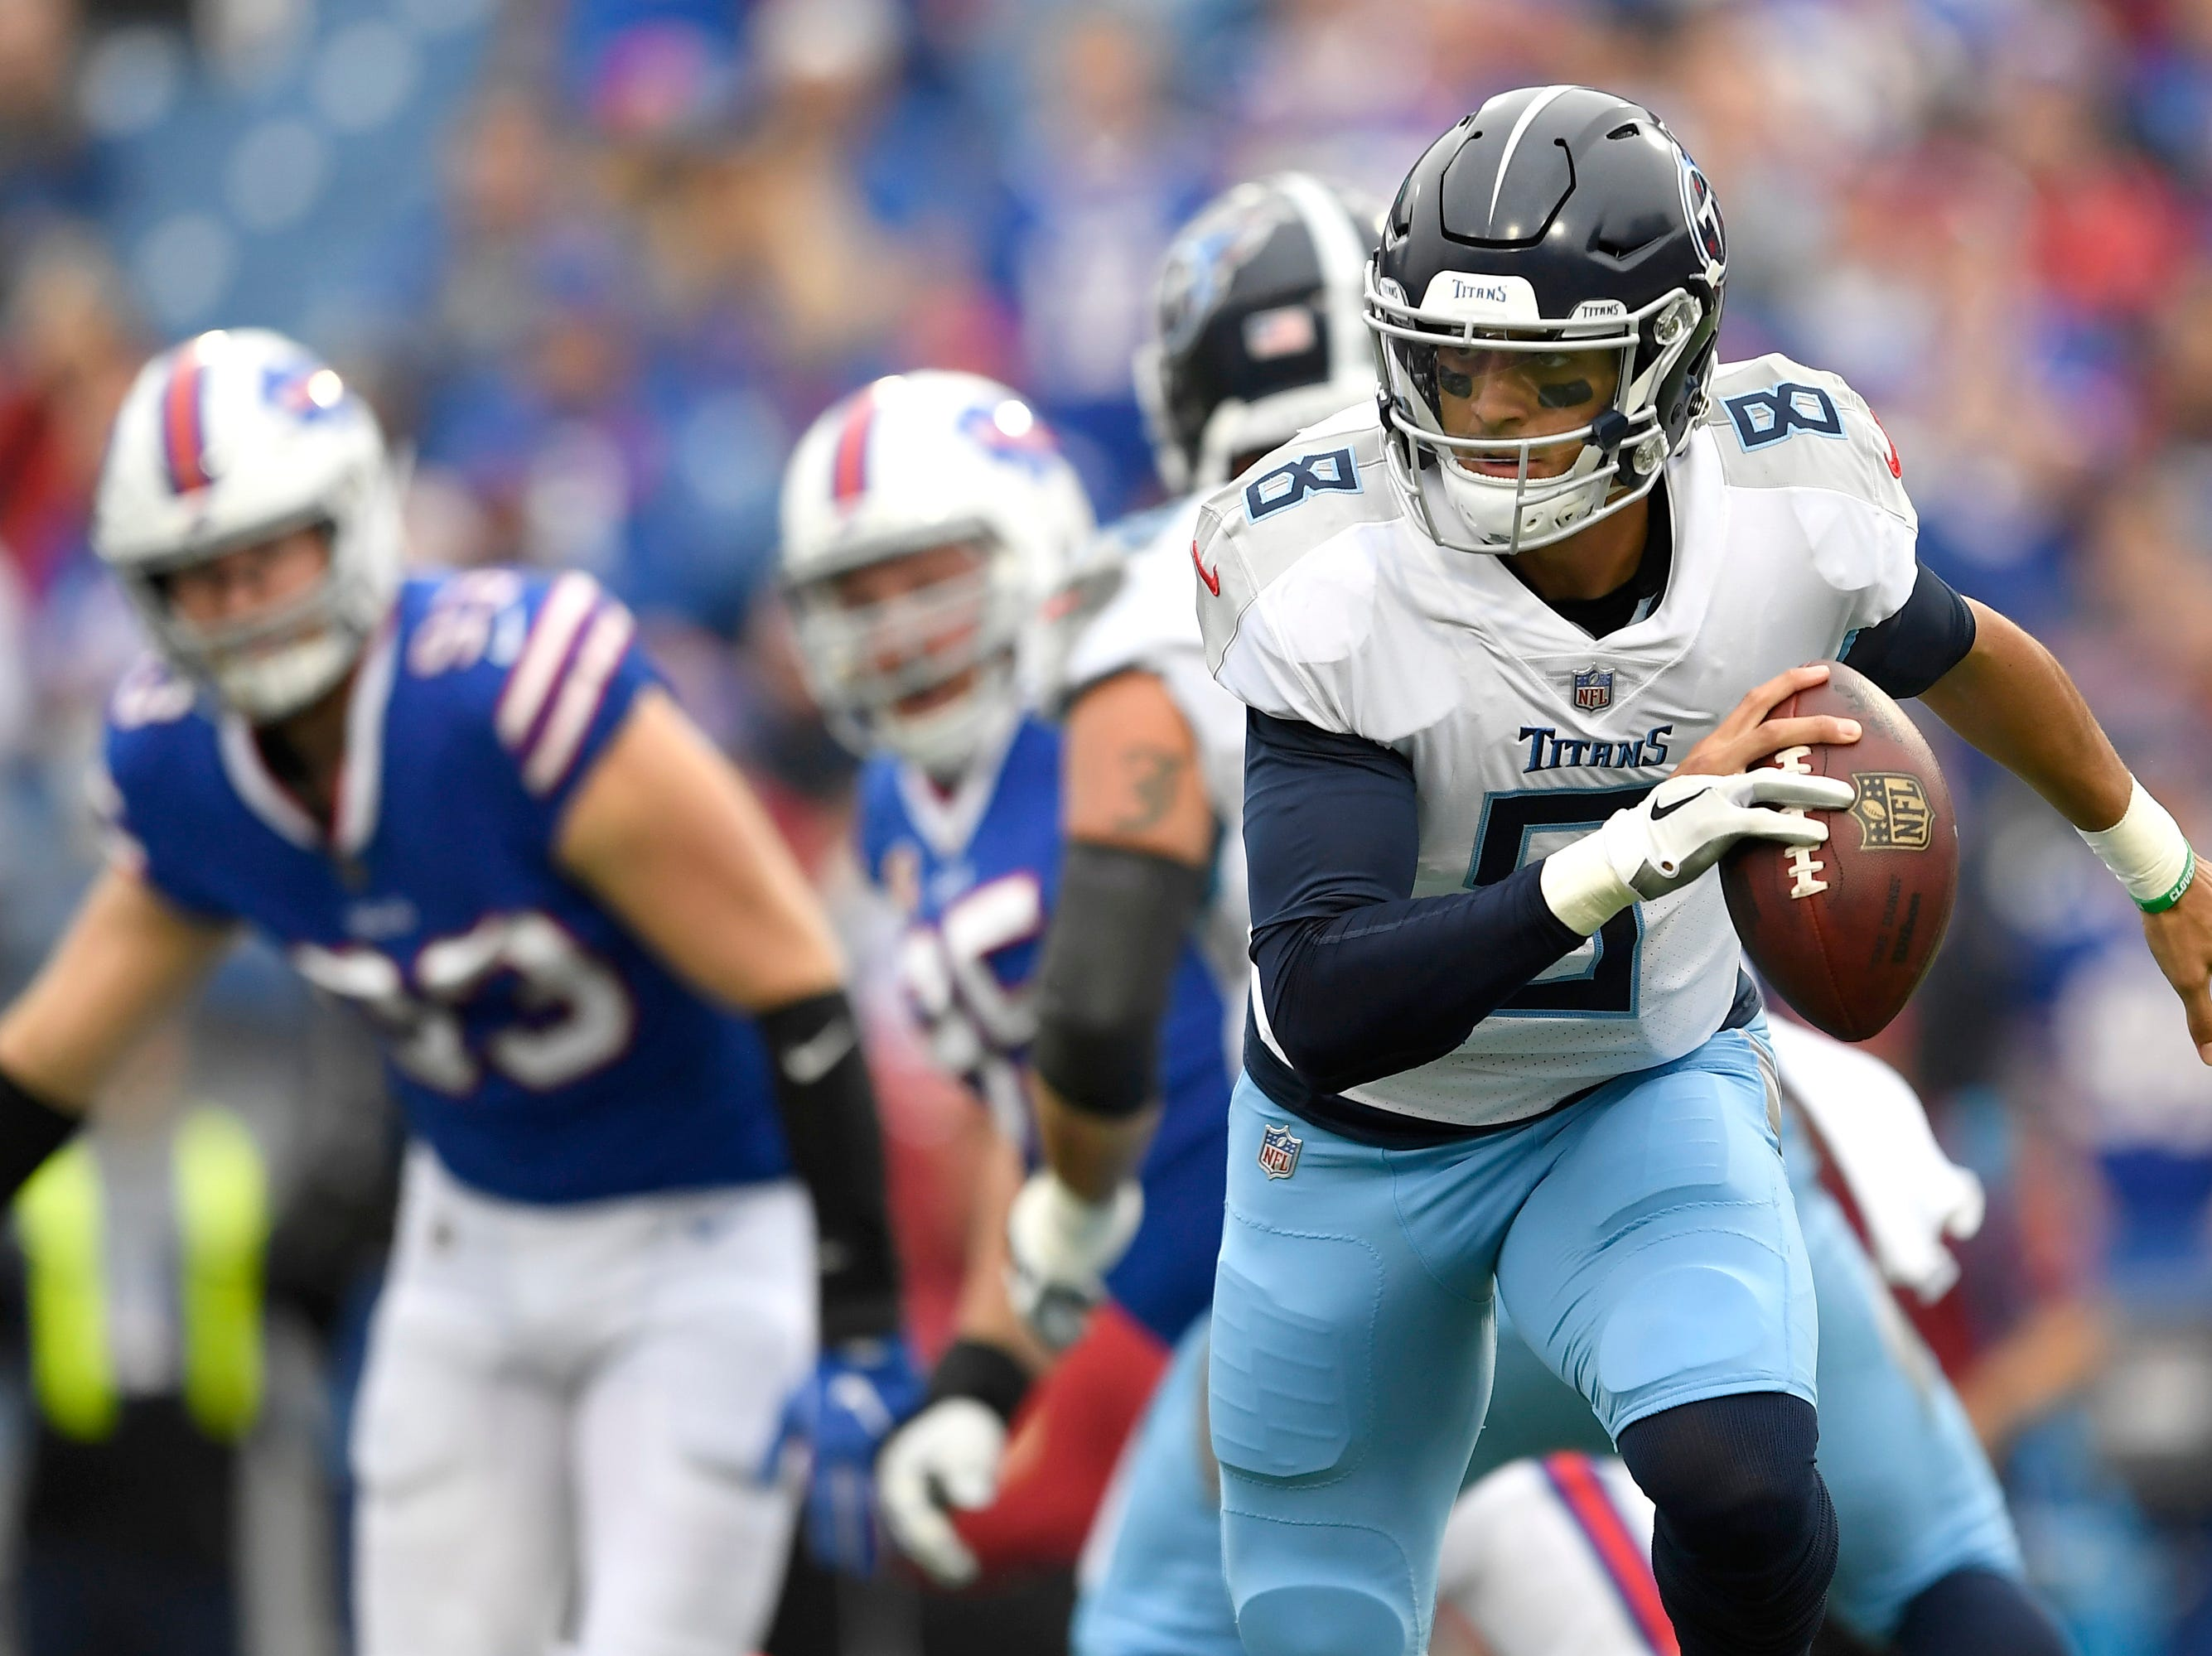 Tennessee Titans quarterback Marcus Mariota scrambles against the Buffalo Bills during the first half of an NFL football game, Sunday, Oct. 7, 2018, in Orchard Park, N.Y.